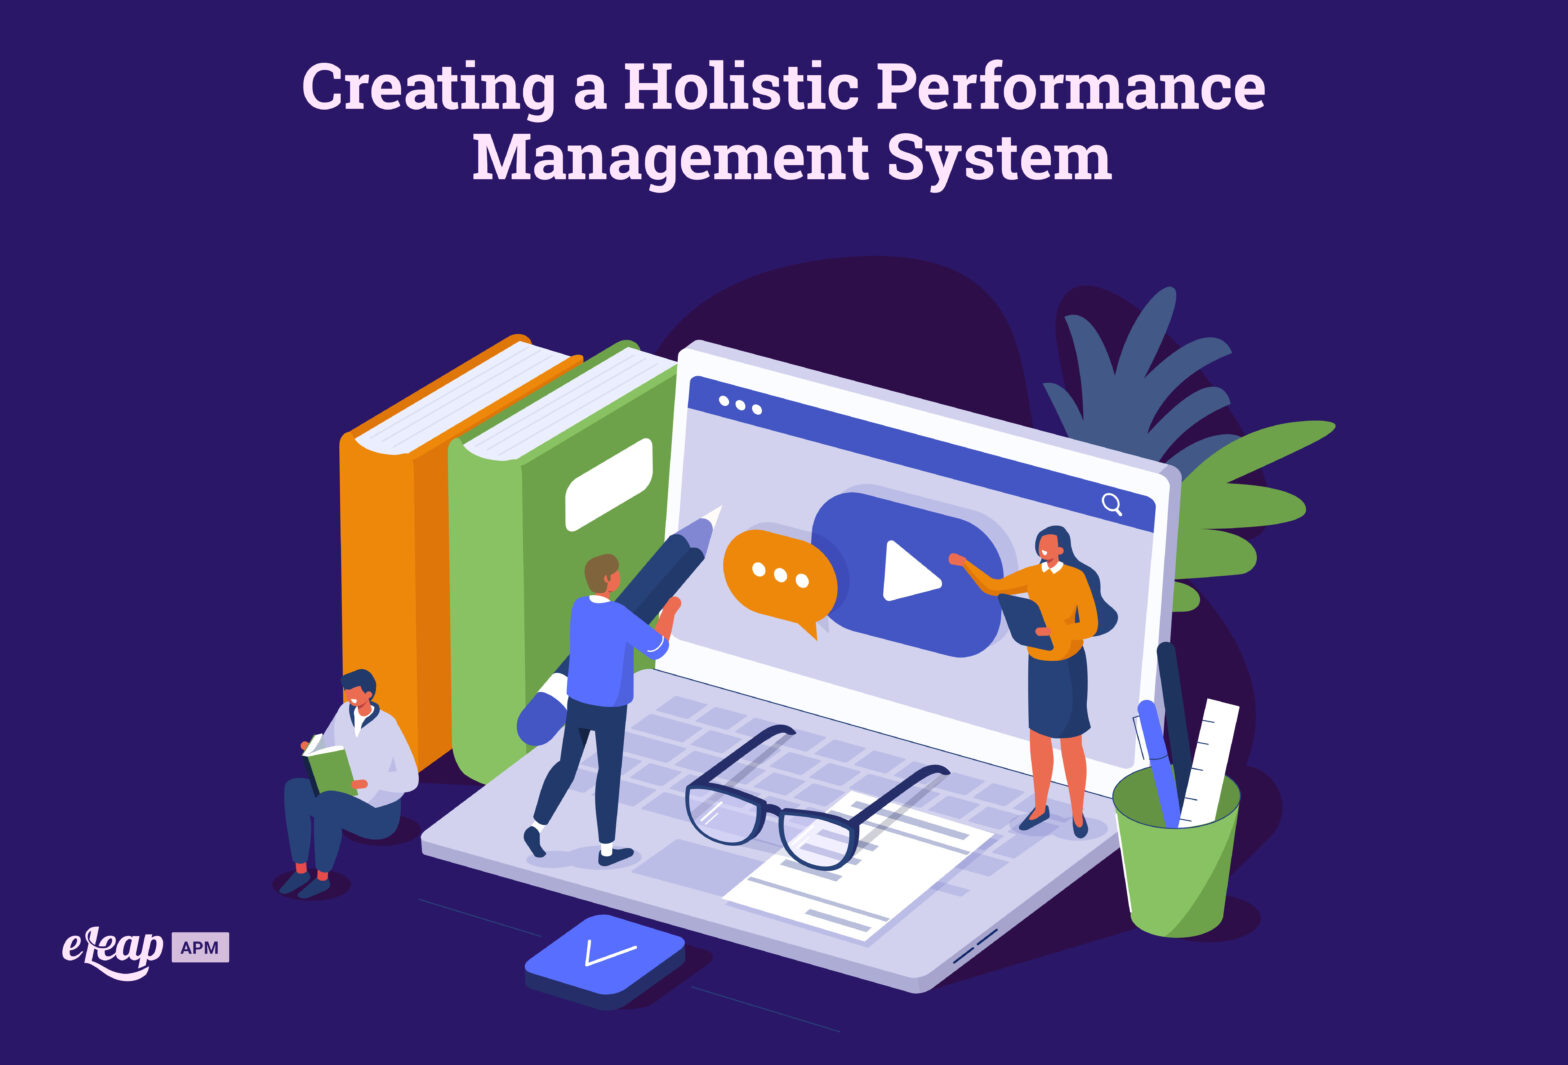 Creating a Holistic Performance Management System